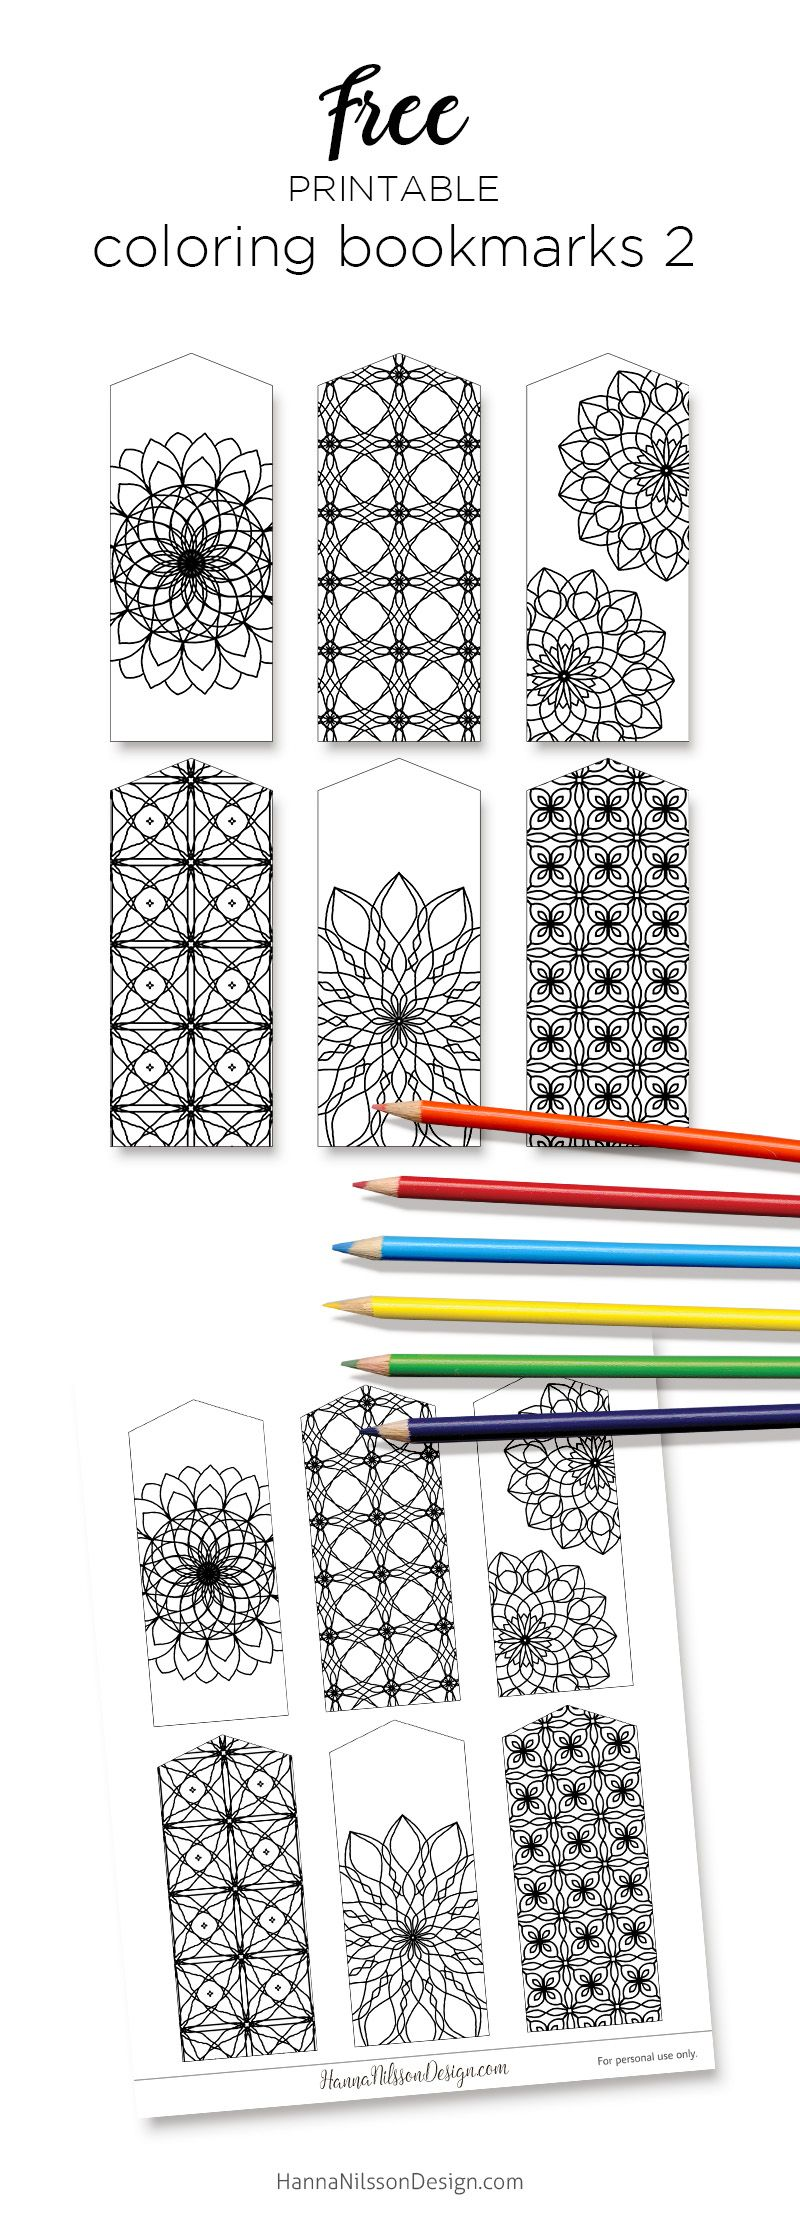 free printable coloring bookmarks 2 from m hanna nilsson design subscription required - Printing Coloring Pictures 2